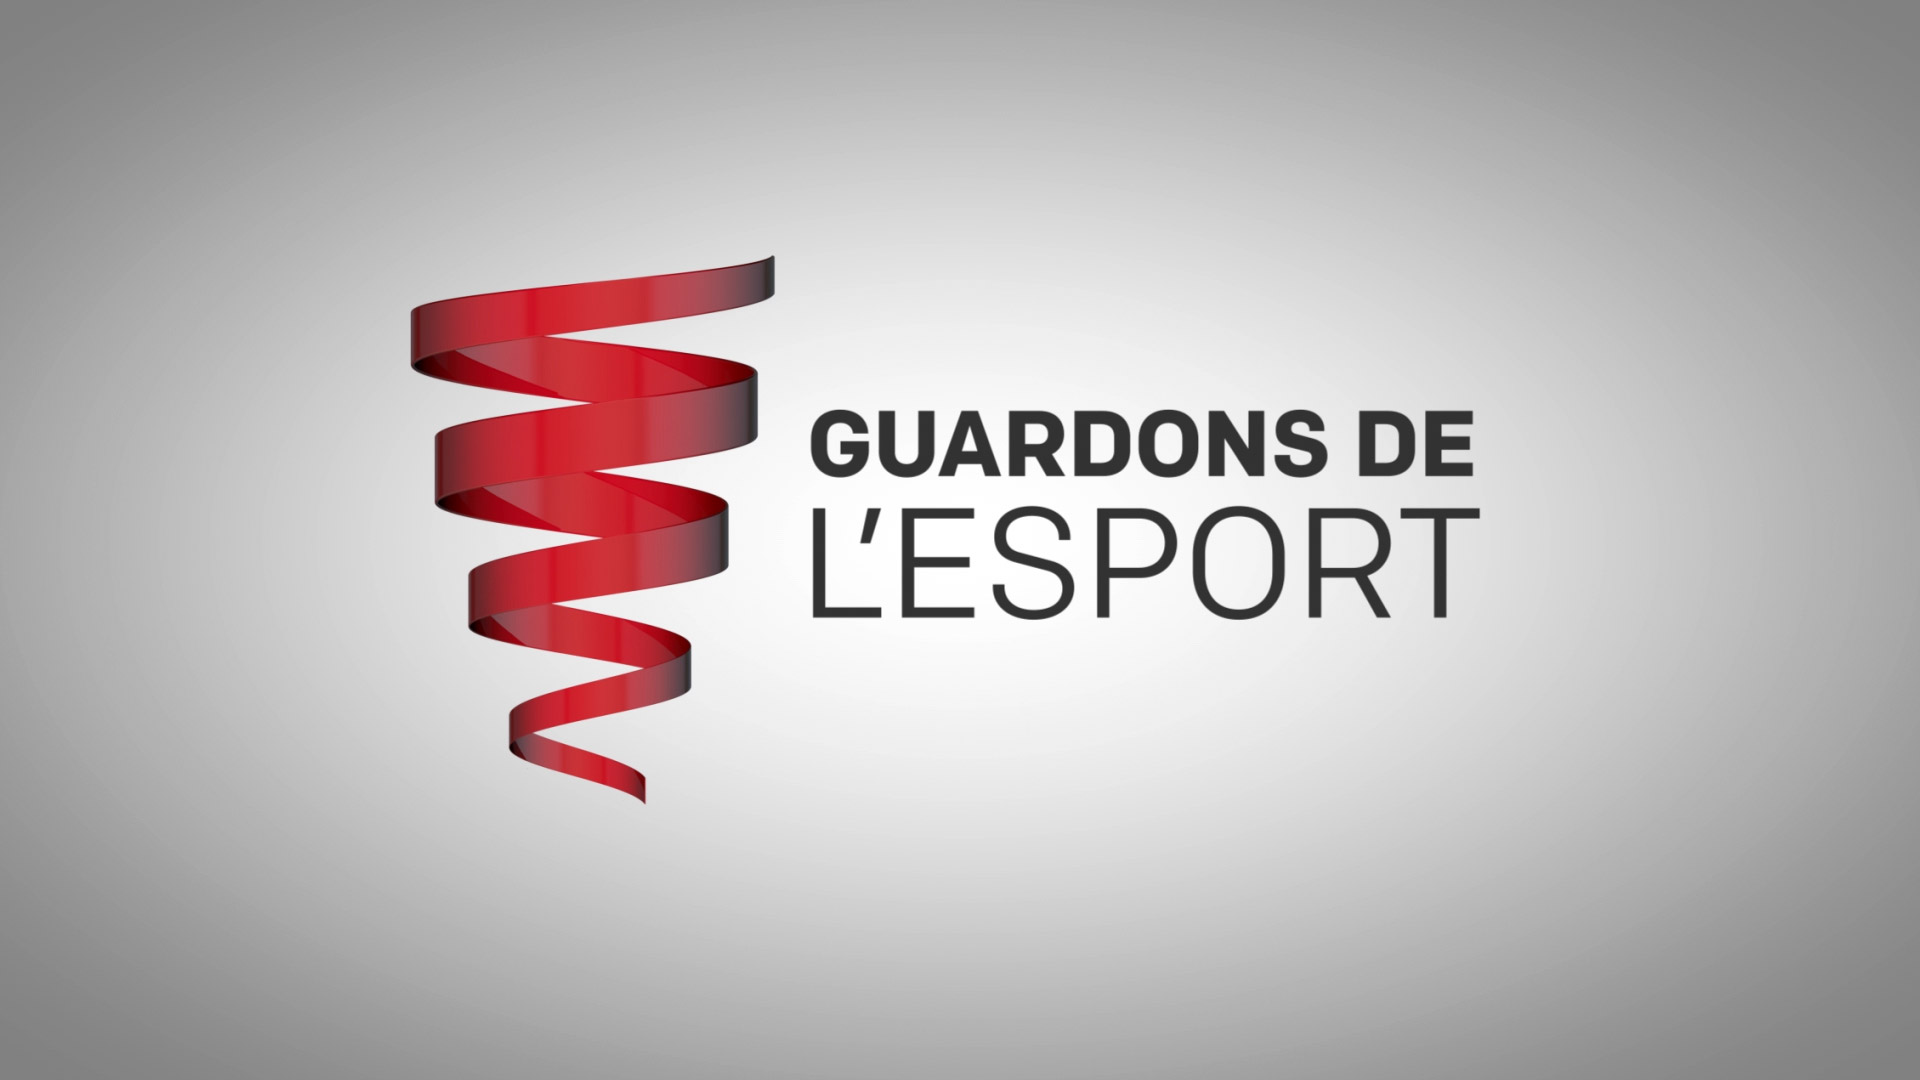 Diseño Identidad corporativa Motion graphics Guardons de l'Esport